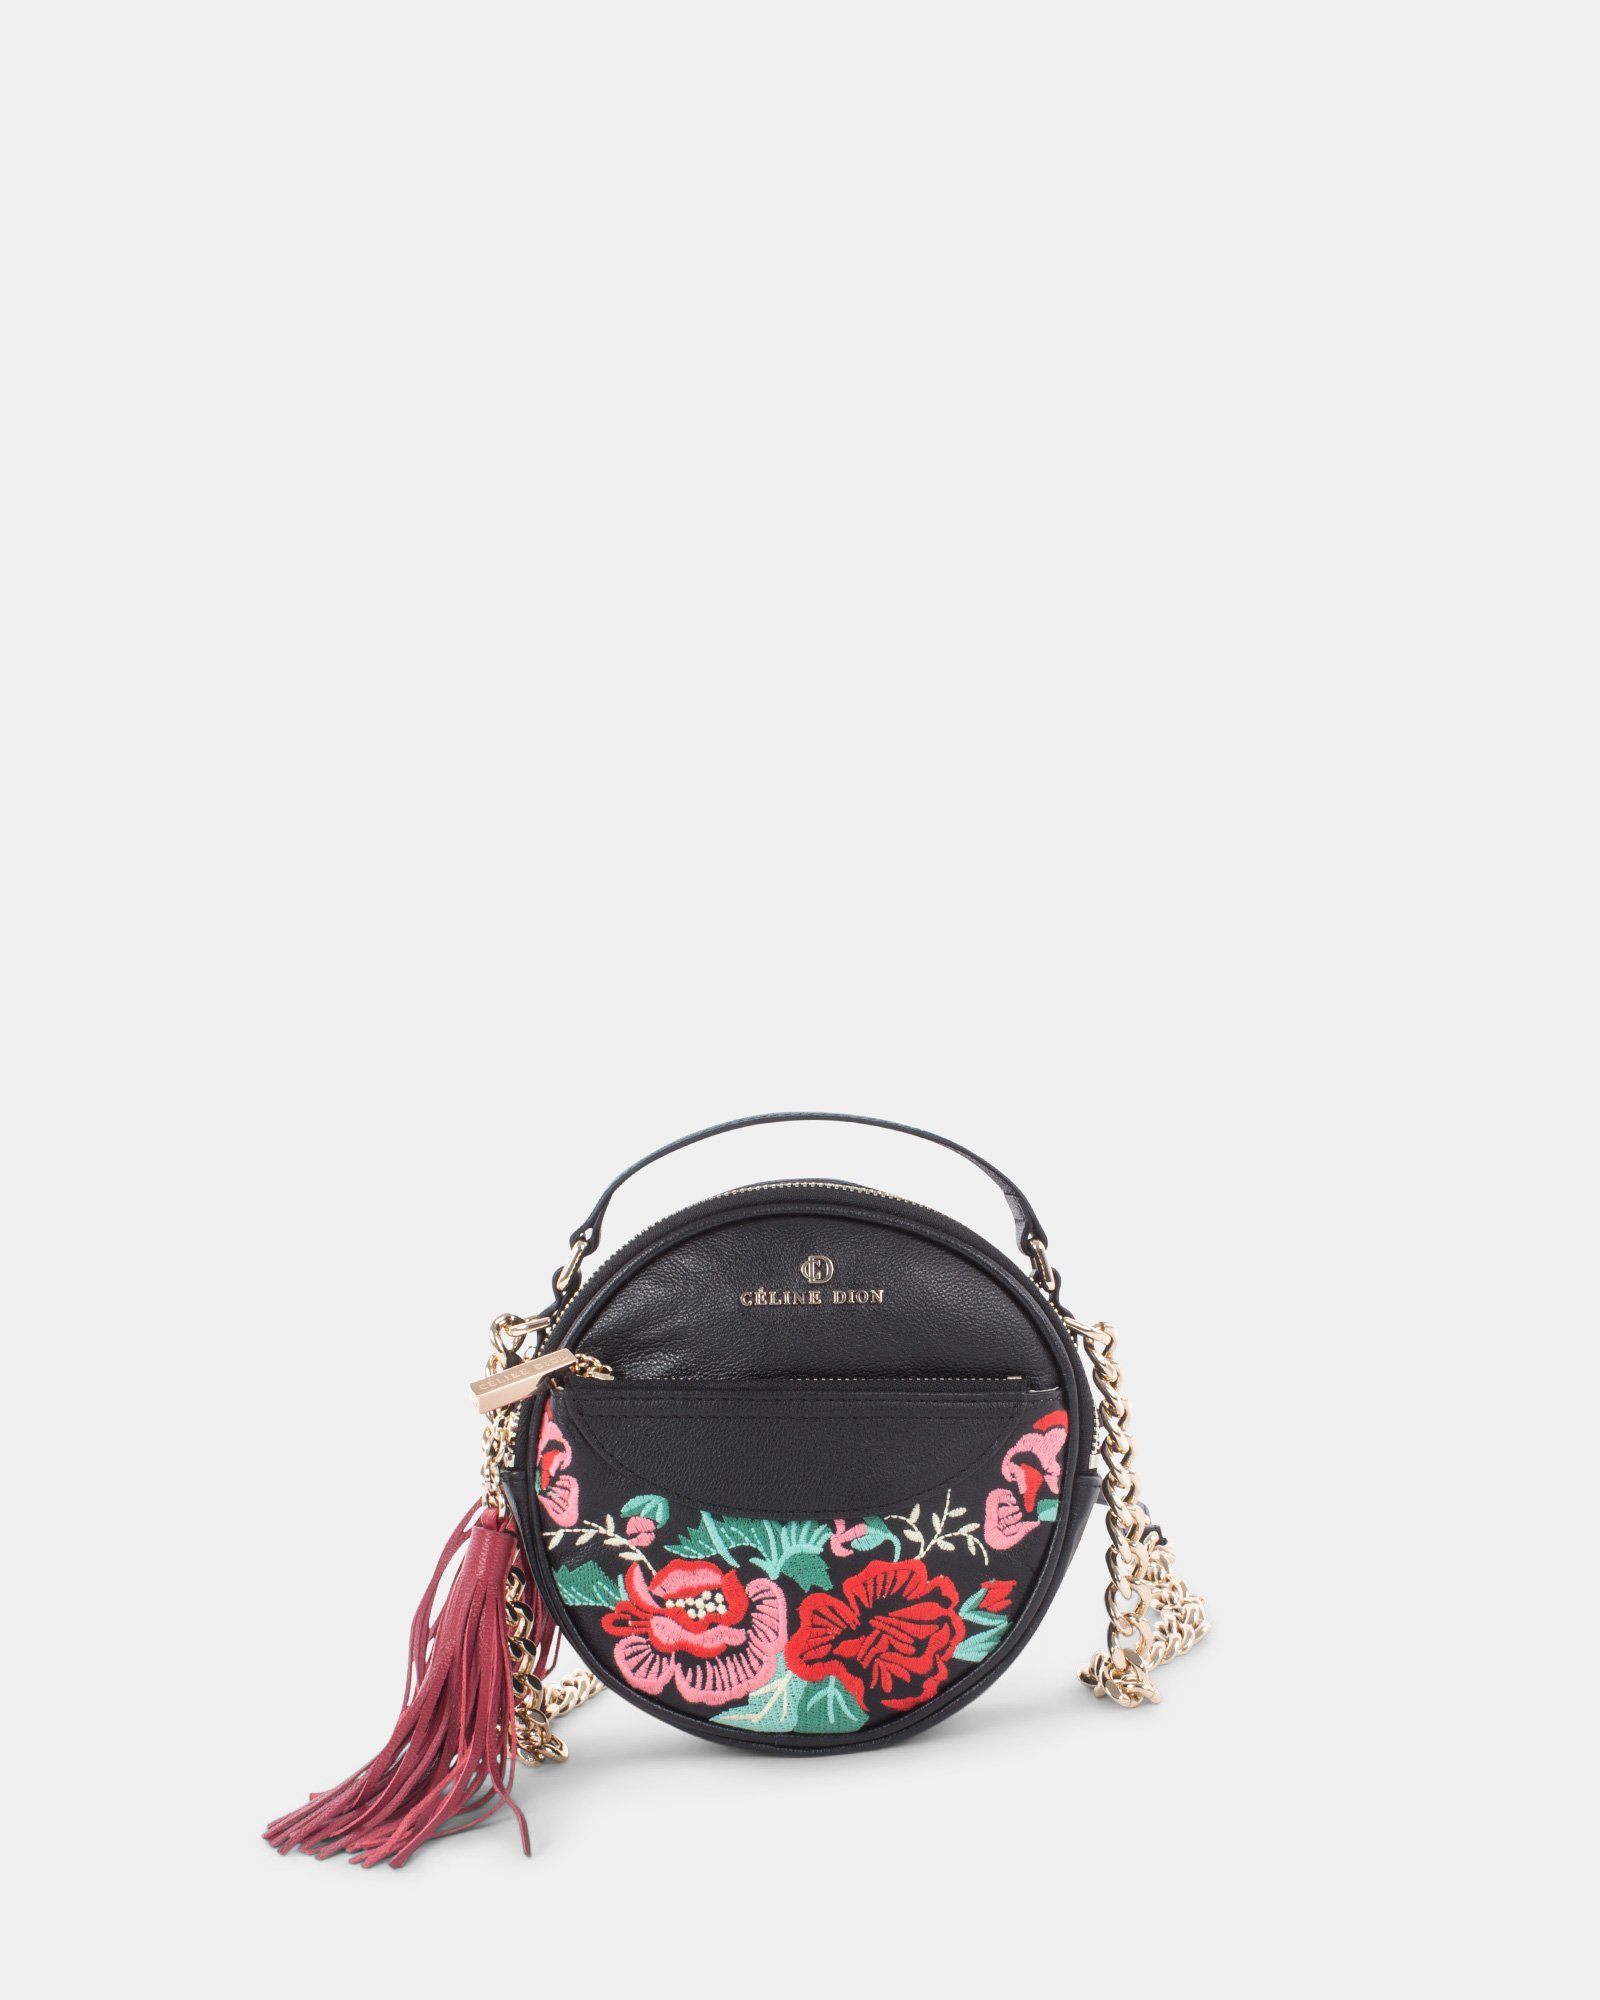 Harmonic - Round crossbody in Soft leather with embroidery - Black  - Céline Dion - Zoom